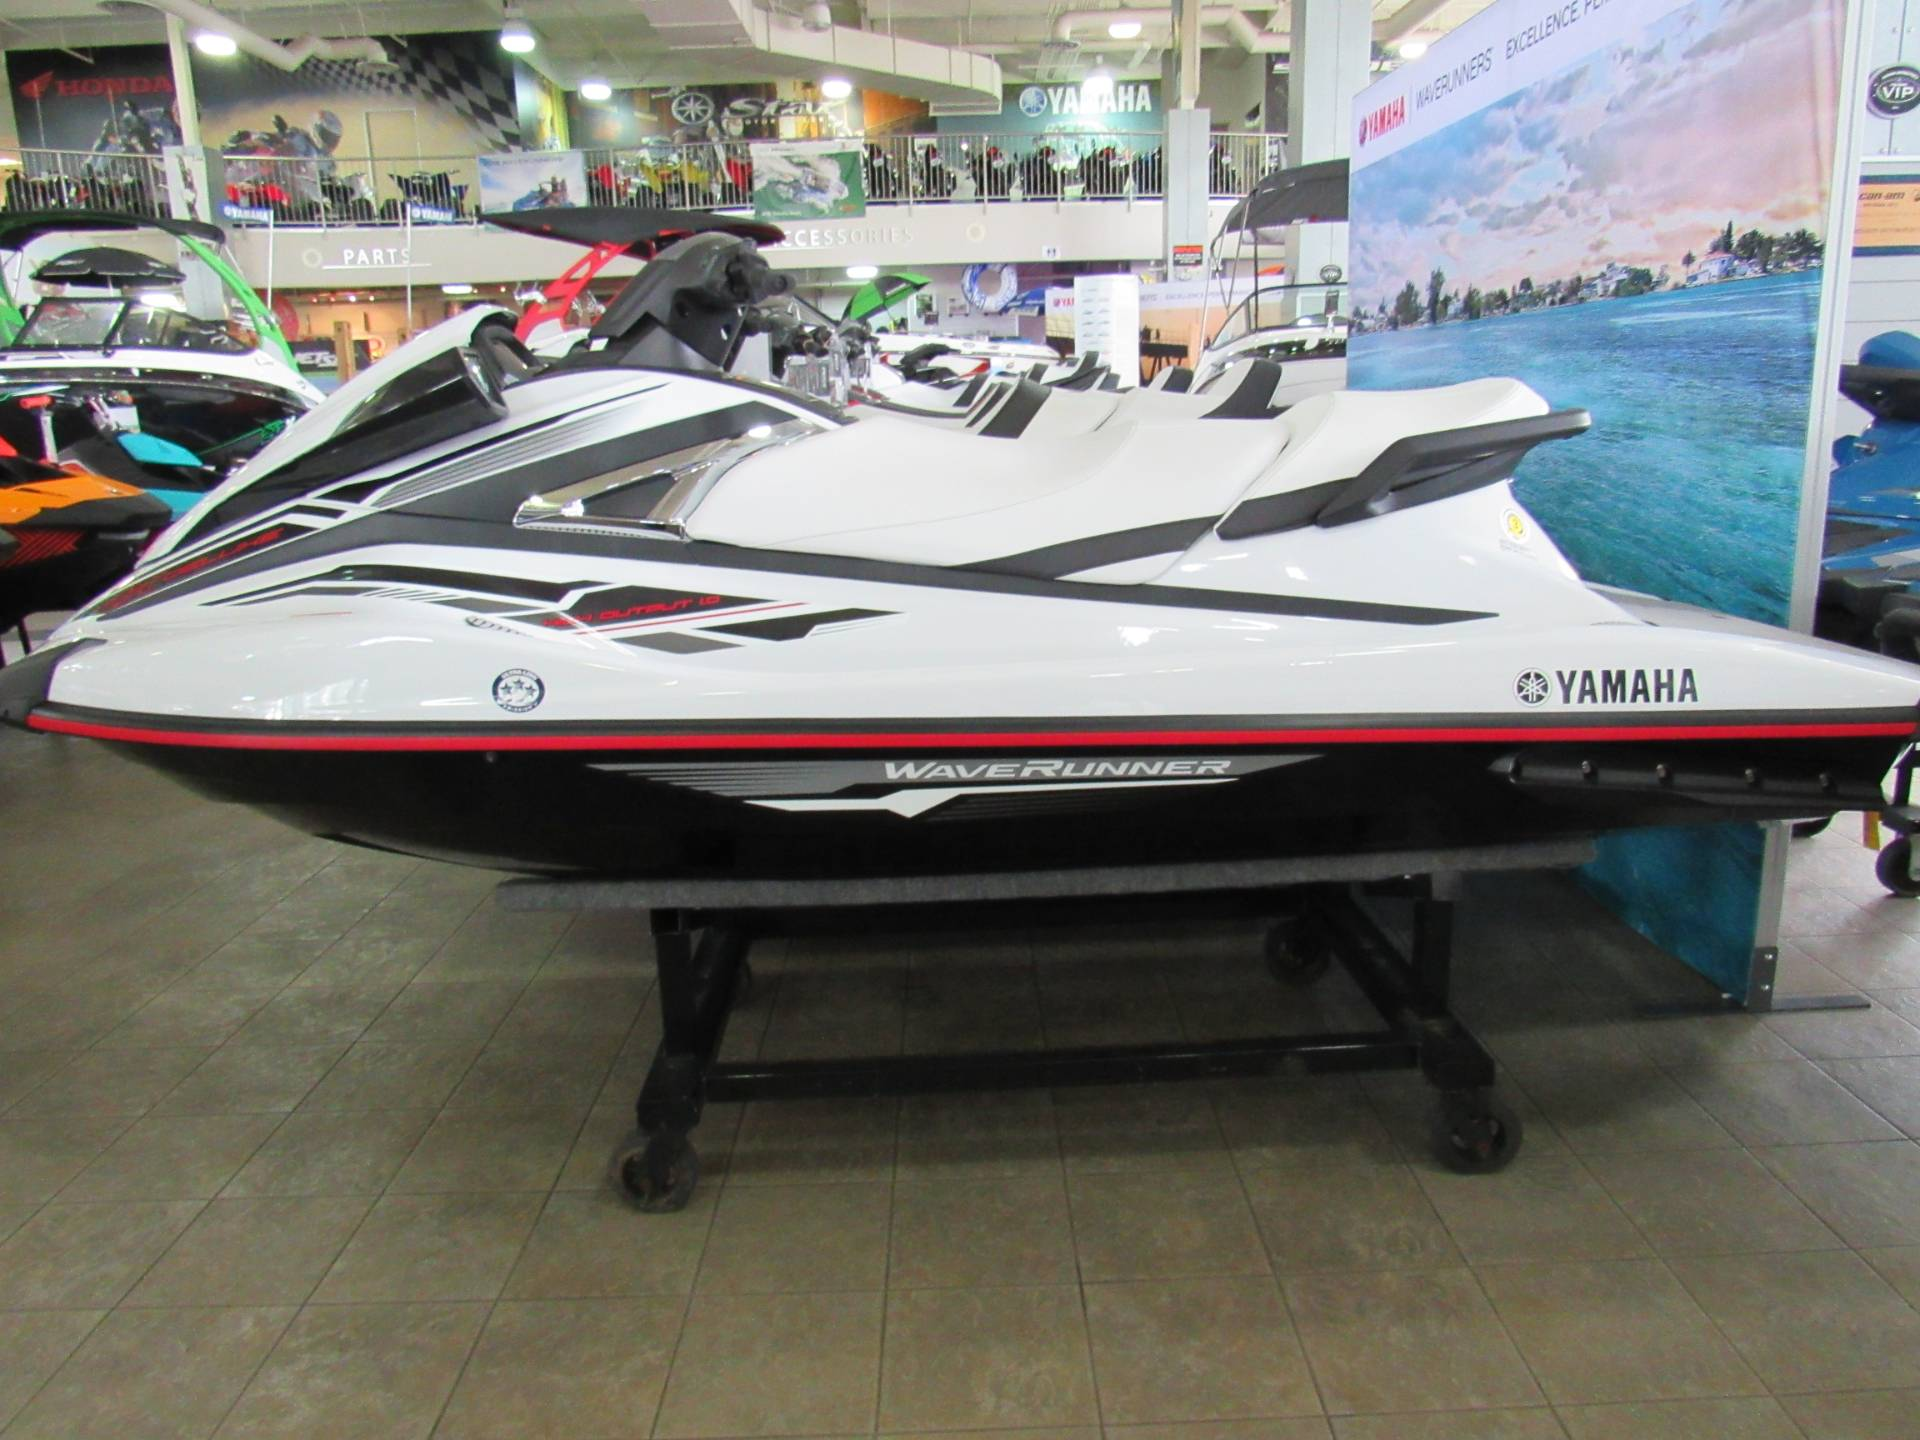 2018 Yamaha VX Deluxe for sale 142450